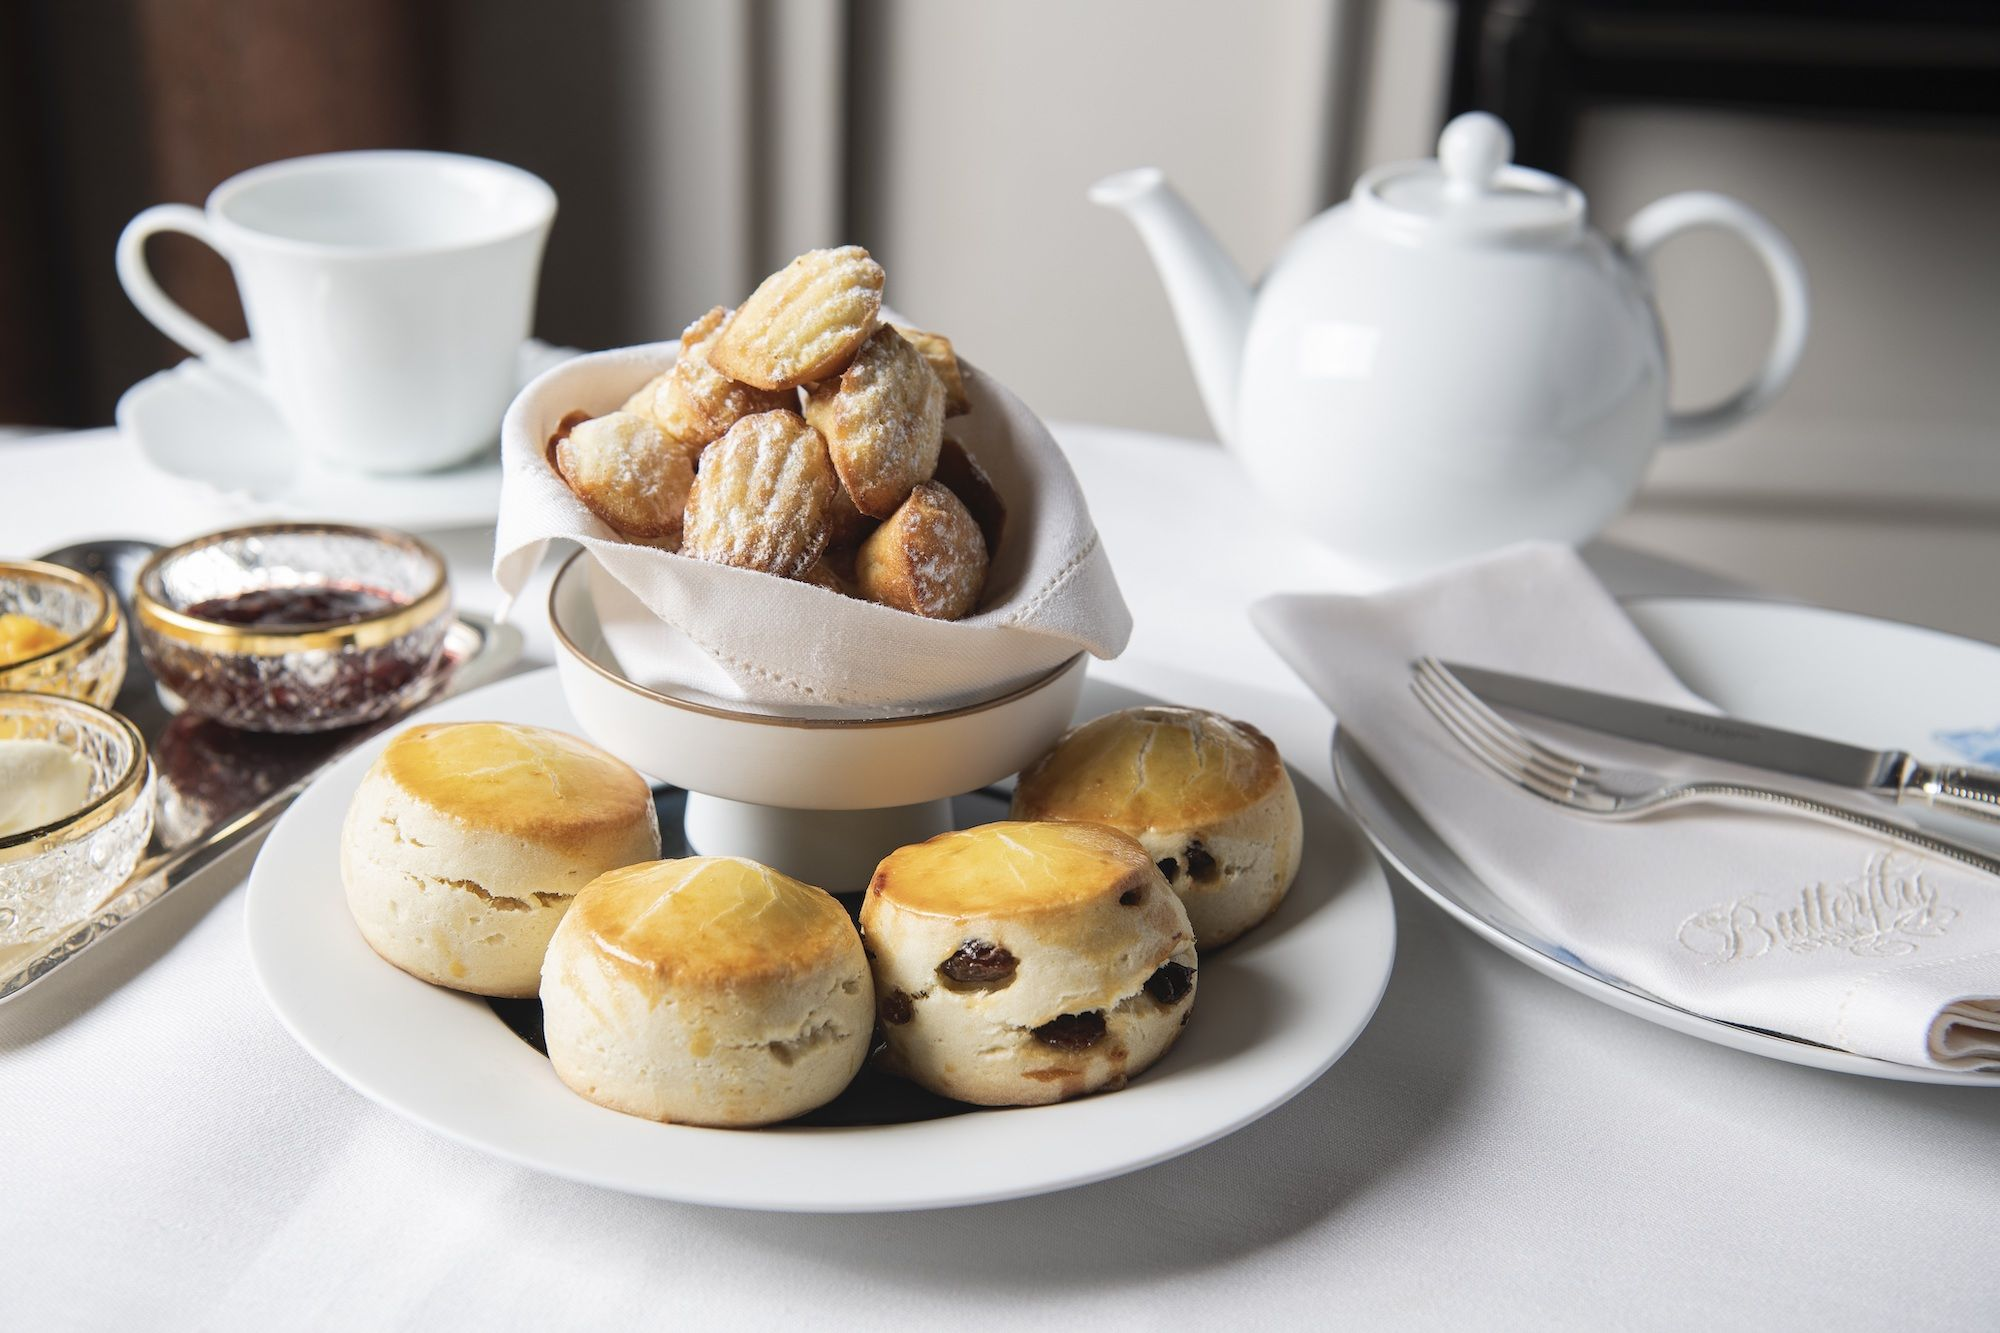 Top 10 Scones In Hong Kong To Try This Spring 2021